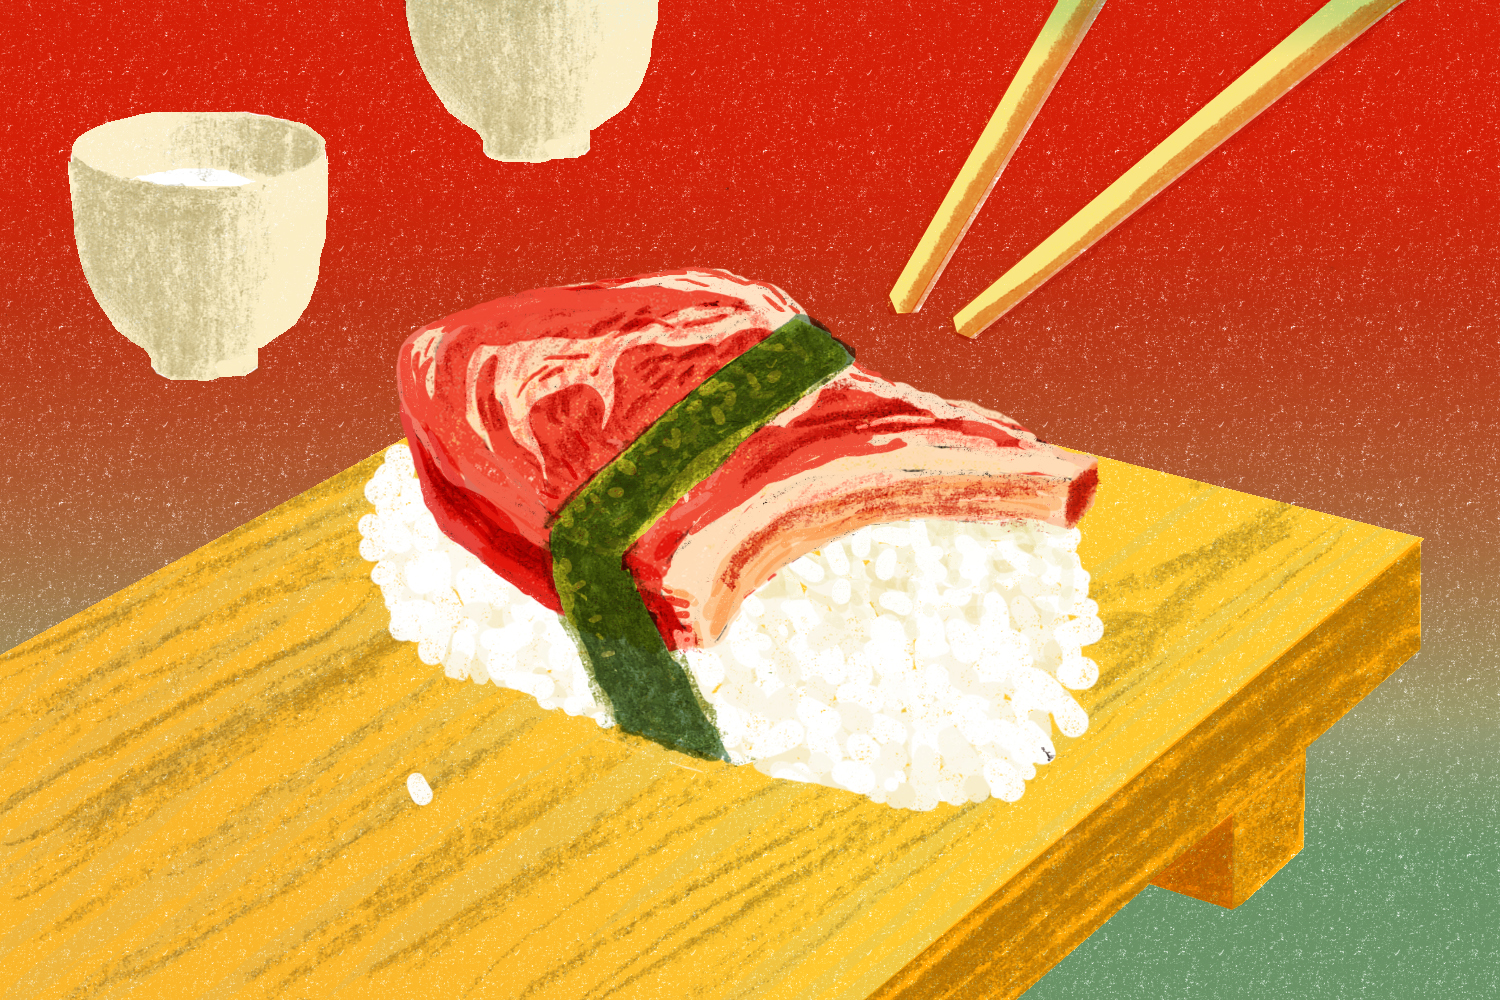 Sushi and Raw Beef: Why Can't I Eat Raw Meat? | Time